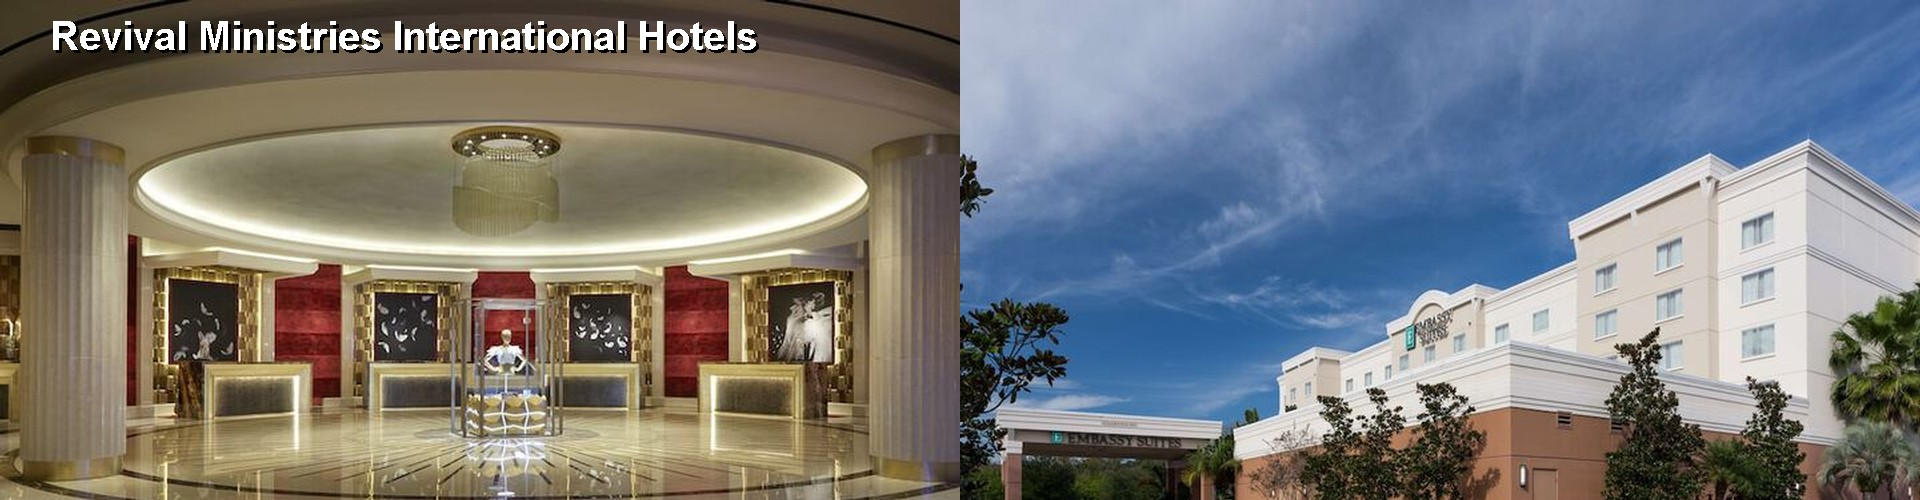 5 Best Hotels near Revival Ministries International